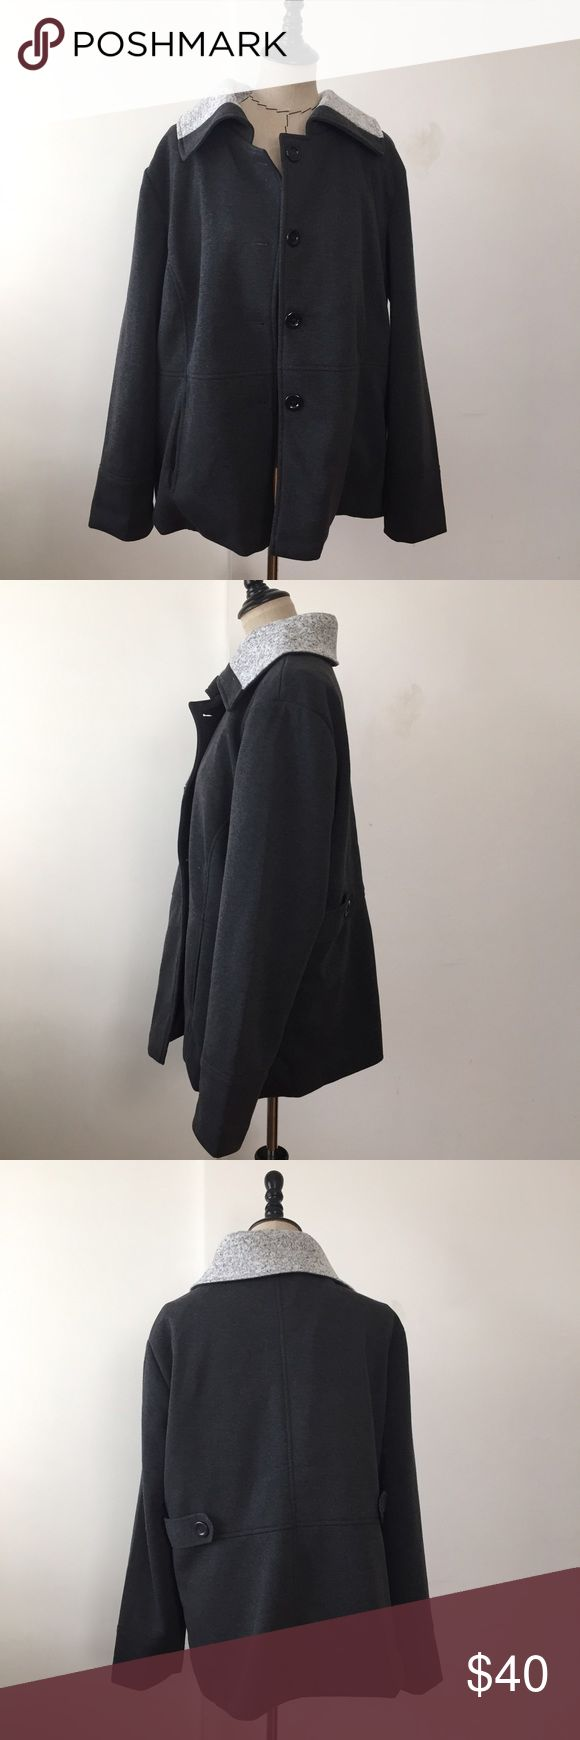 NWT charcoal grey plus size peacoat jacket Brand new with tags! Has two pockets. No buttons are missing. Comes with an extra button. 100% polyester. Jackets & Coats Pea Coats